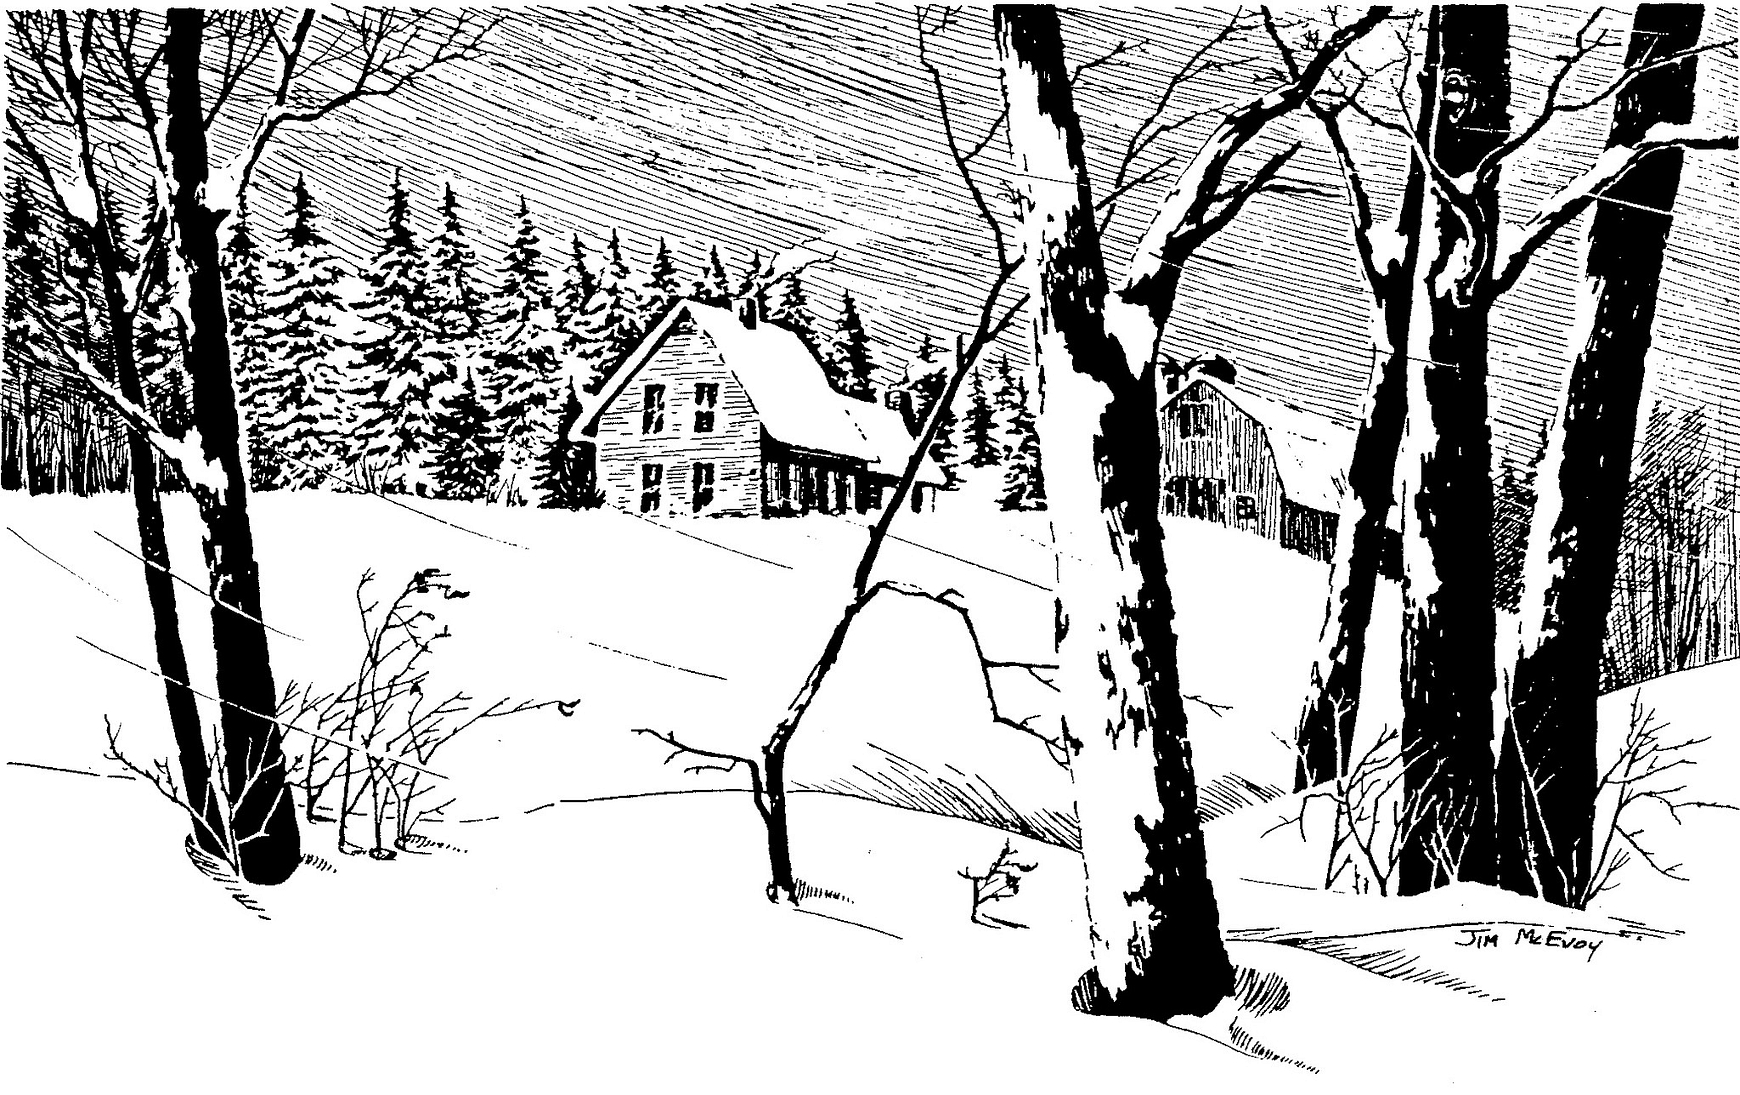 black and white drawing of a rural winter scene